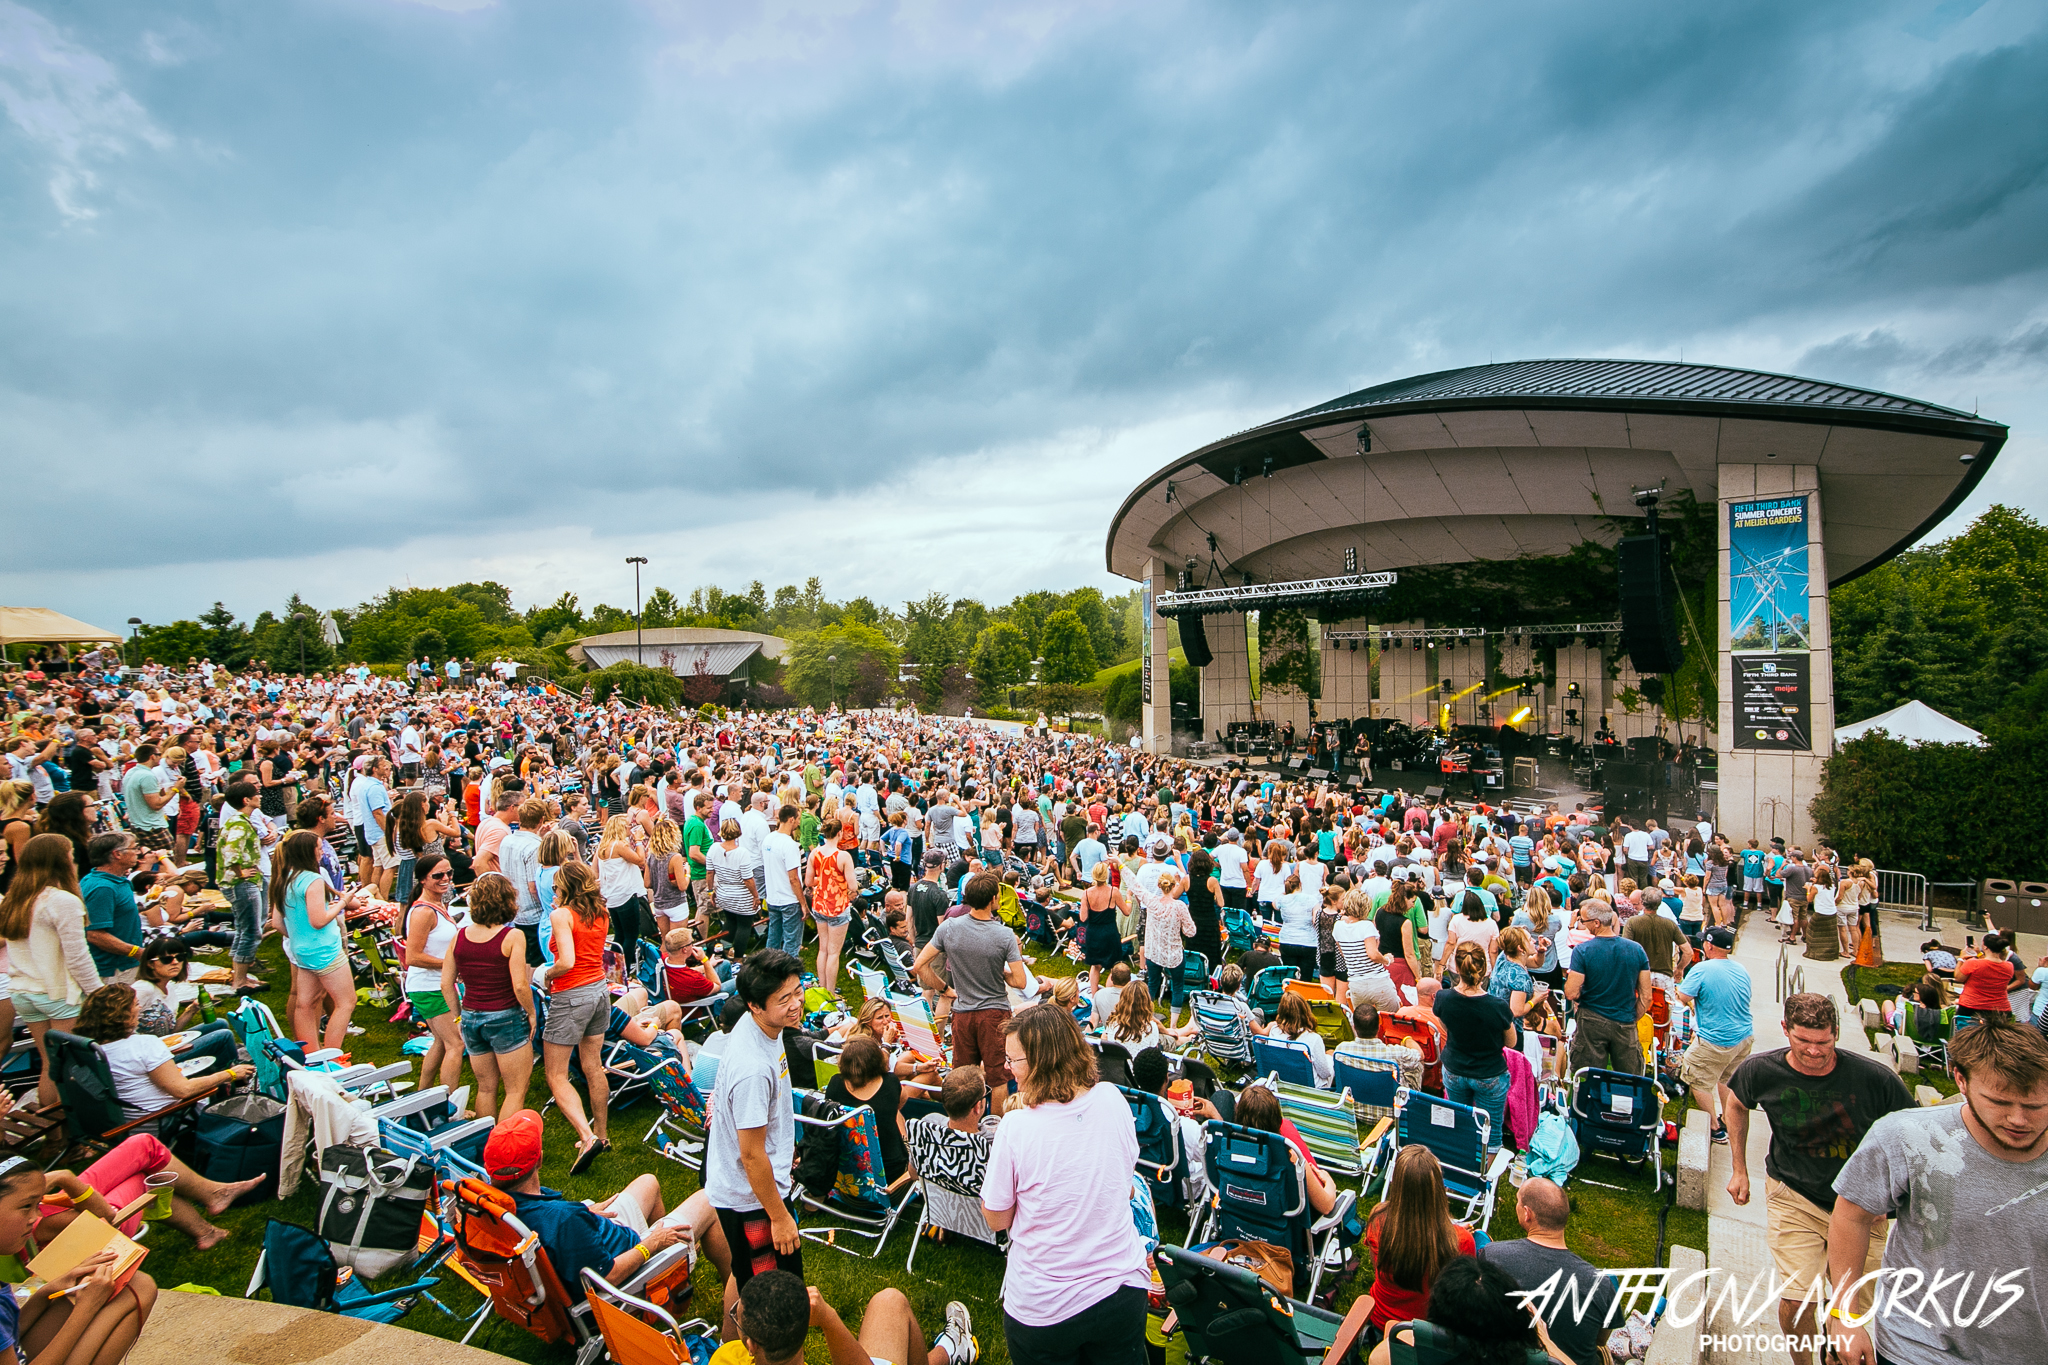 Filling Up the Amphitheater: The 2015 Meijer Gardens concert series features 30 shows, including